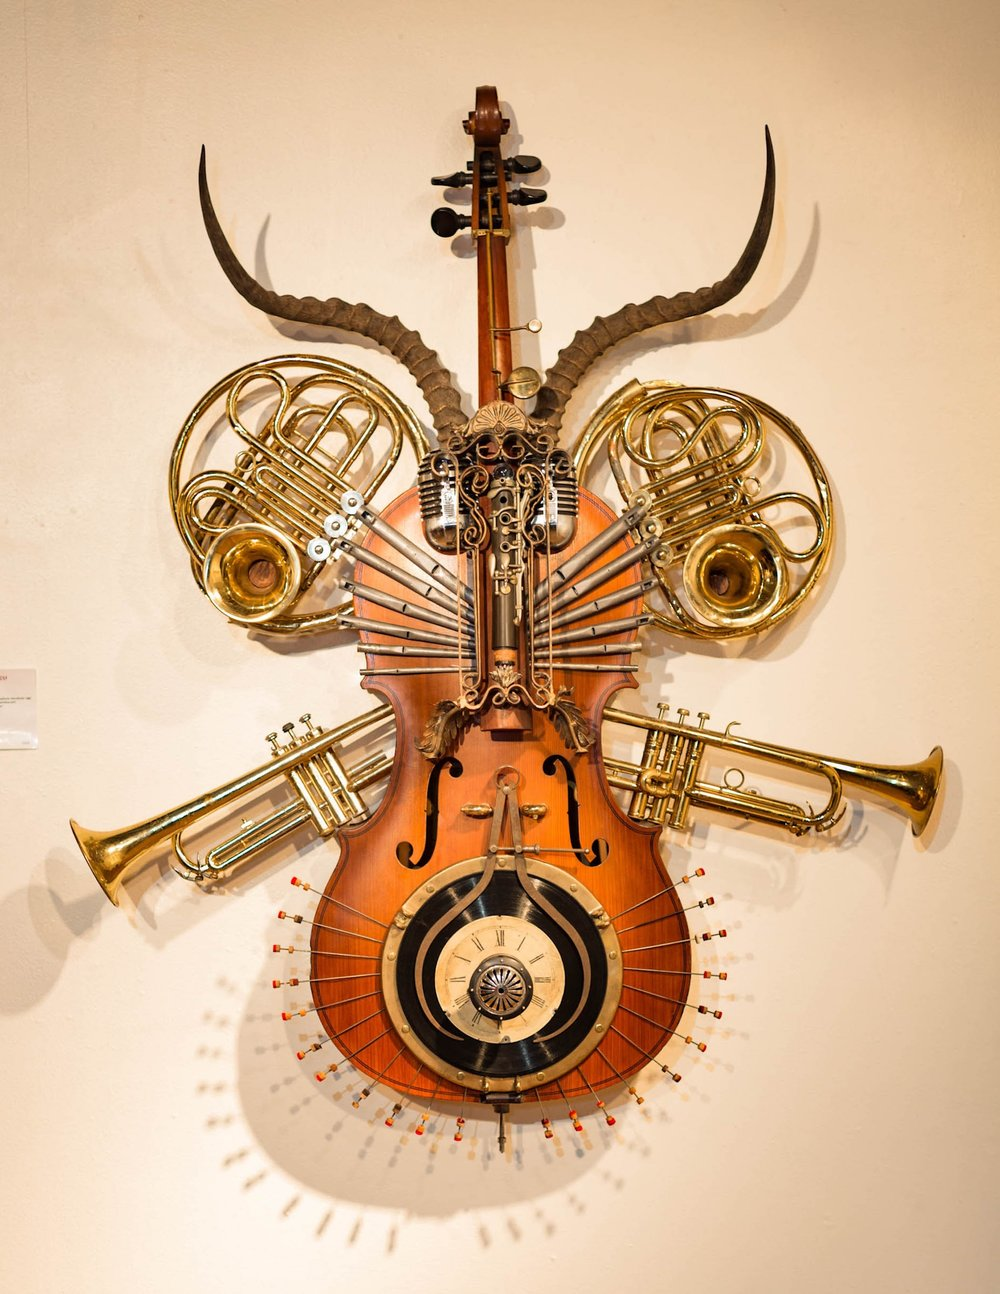 · Concert Cello  · African Impala horns  · 2- French Horn manifolds  · 2- trumpets  · 2- trumpet bells  · 1890's lead pipe organ pipes and brass reed  · Electro Voice Cardyne II, Model 731 microphone  · Wooden lower tube clarinet & bell  · Tenor Sax rod and pads  · 2- 78 Classical records  · Mid 19th century clock dial  · 1908 gramophone reproducer cage  · Brass ship window port  · 1860's square grand piano damper push rods  · Large caliper  · Art Deco Candle Sconce